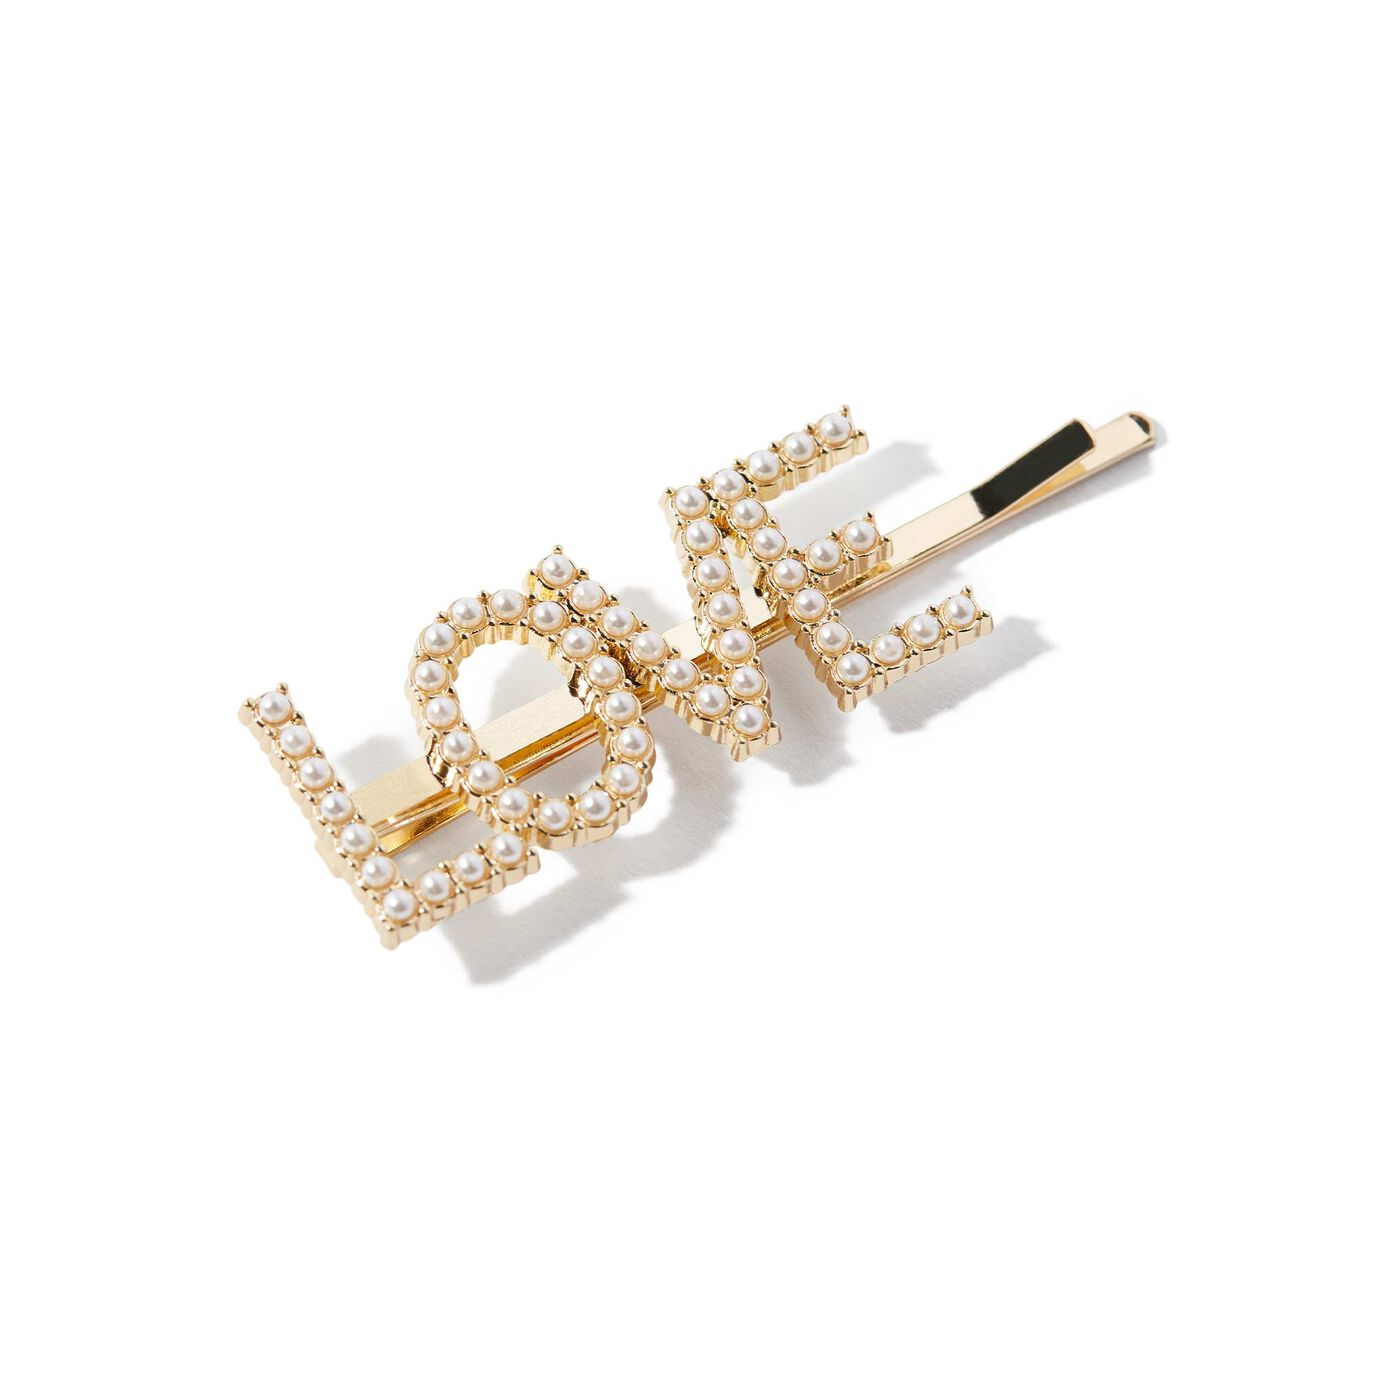 ABH Glam Hairpins - Gold Pearl Love